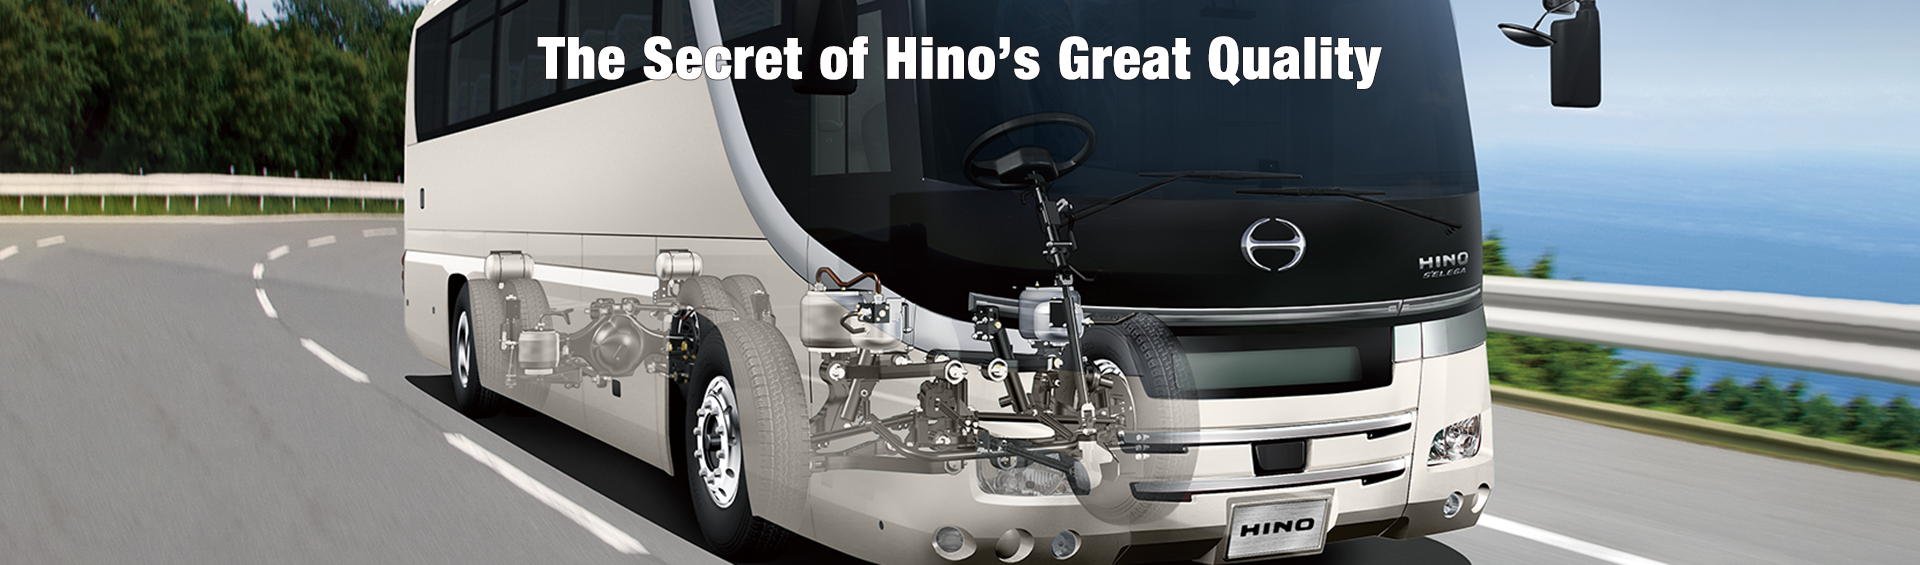 The secret of Hino great quality